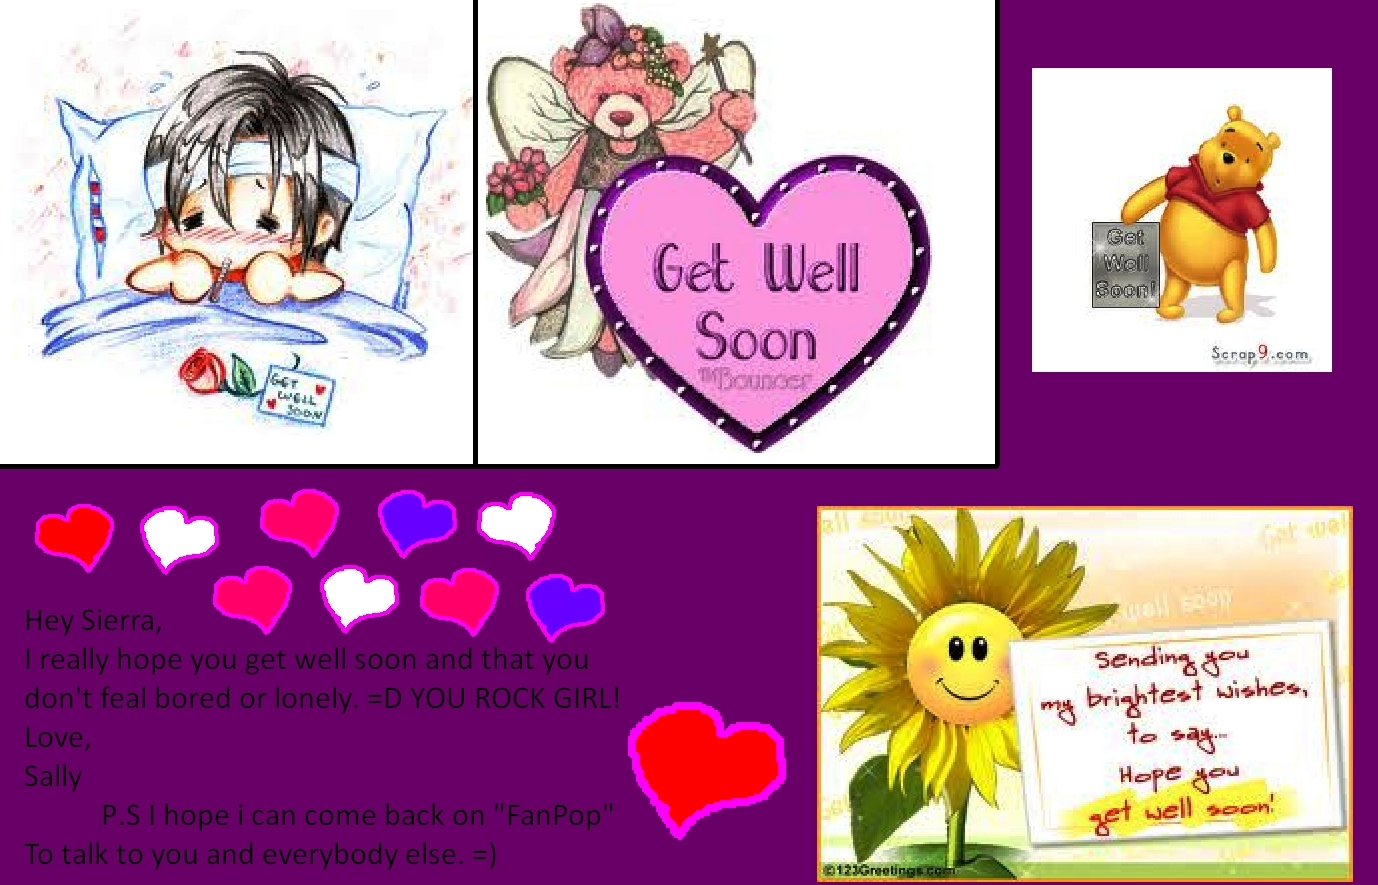 Free Get Well Soon Cards Wallpapers Images For Mobile And Destop